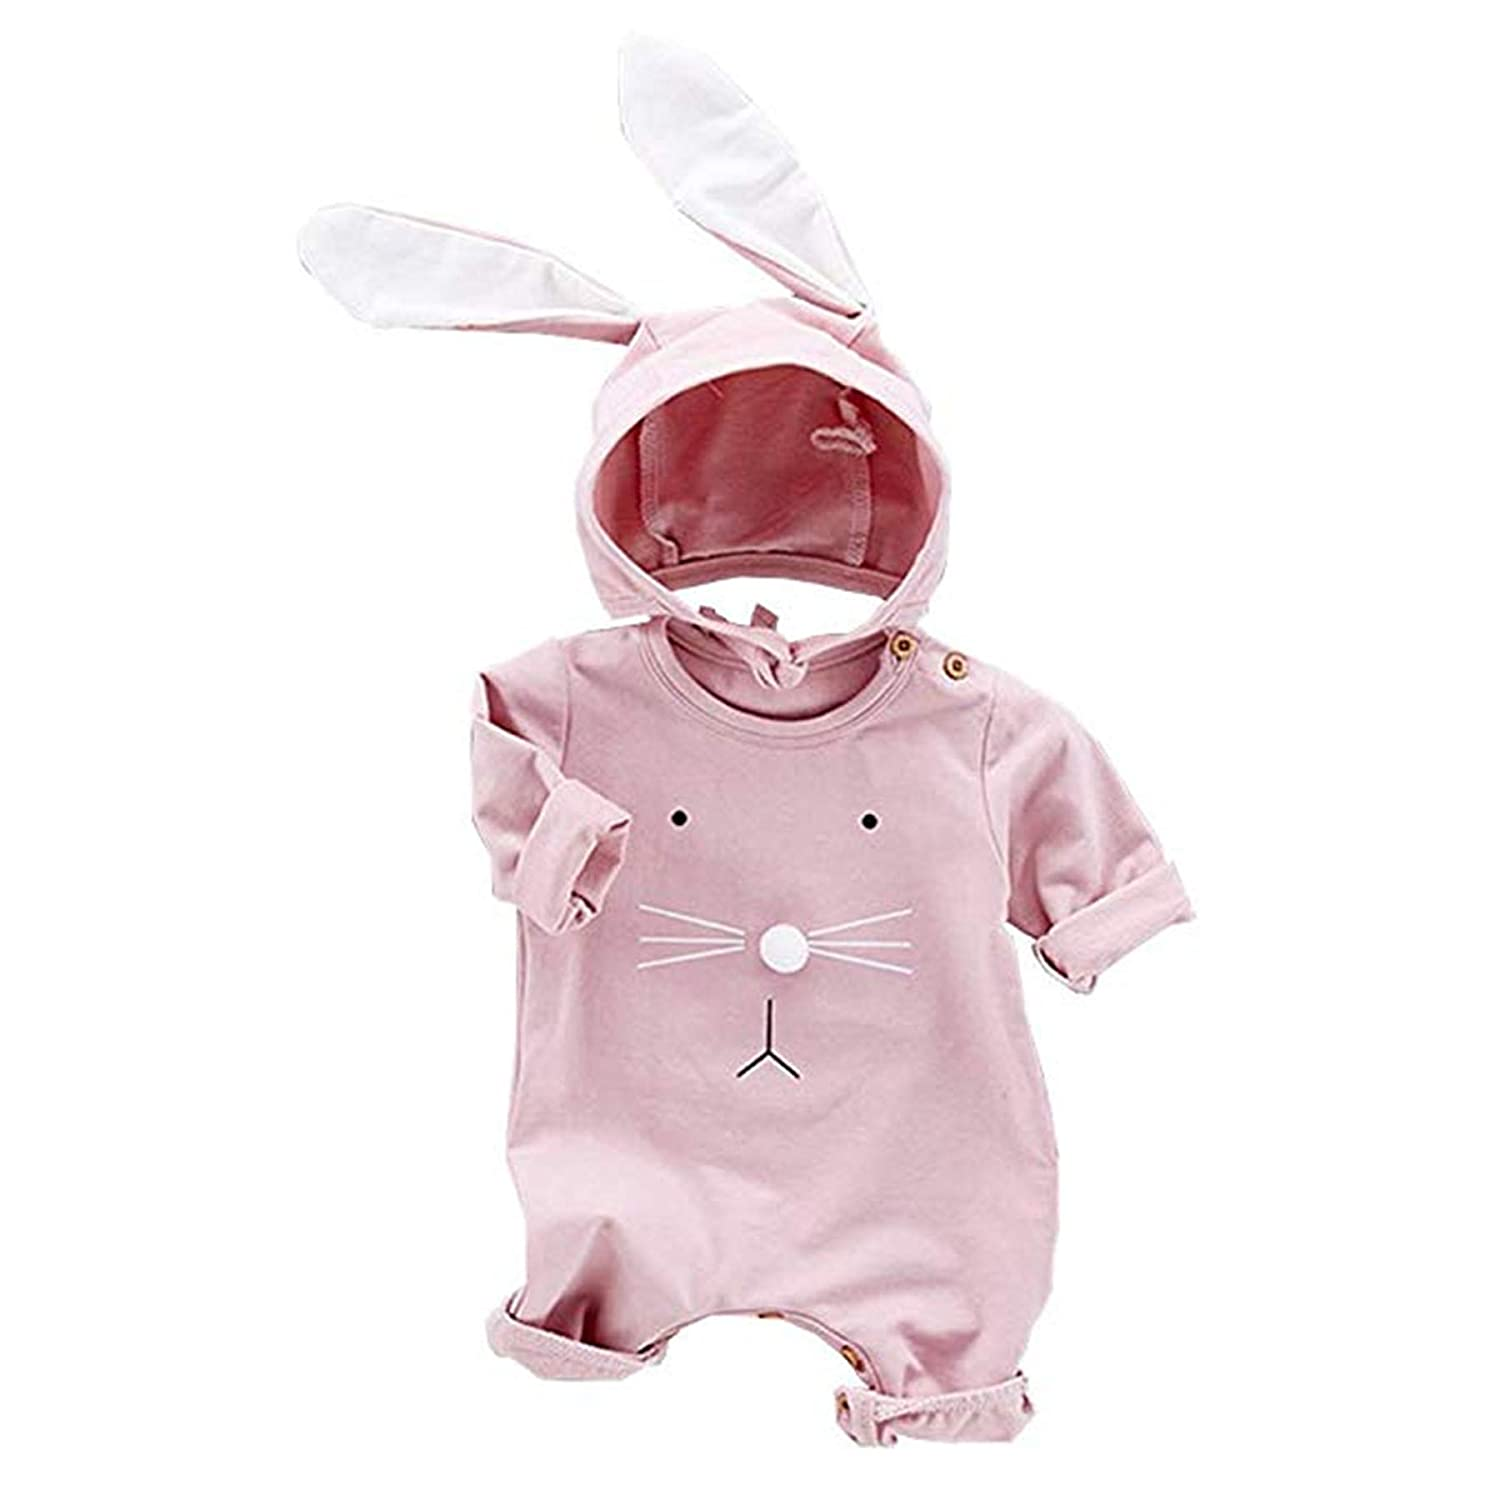 DAYISS 2PCS Easter Outfits for Baby Boys Girls Cotton Bunny Outfit Long Sleeve Romper Big Ear Cap